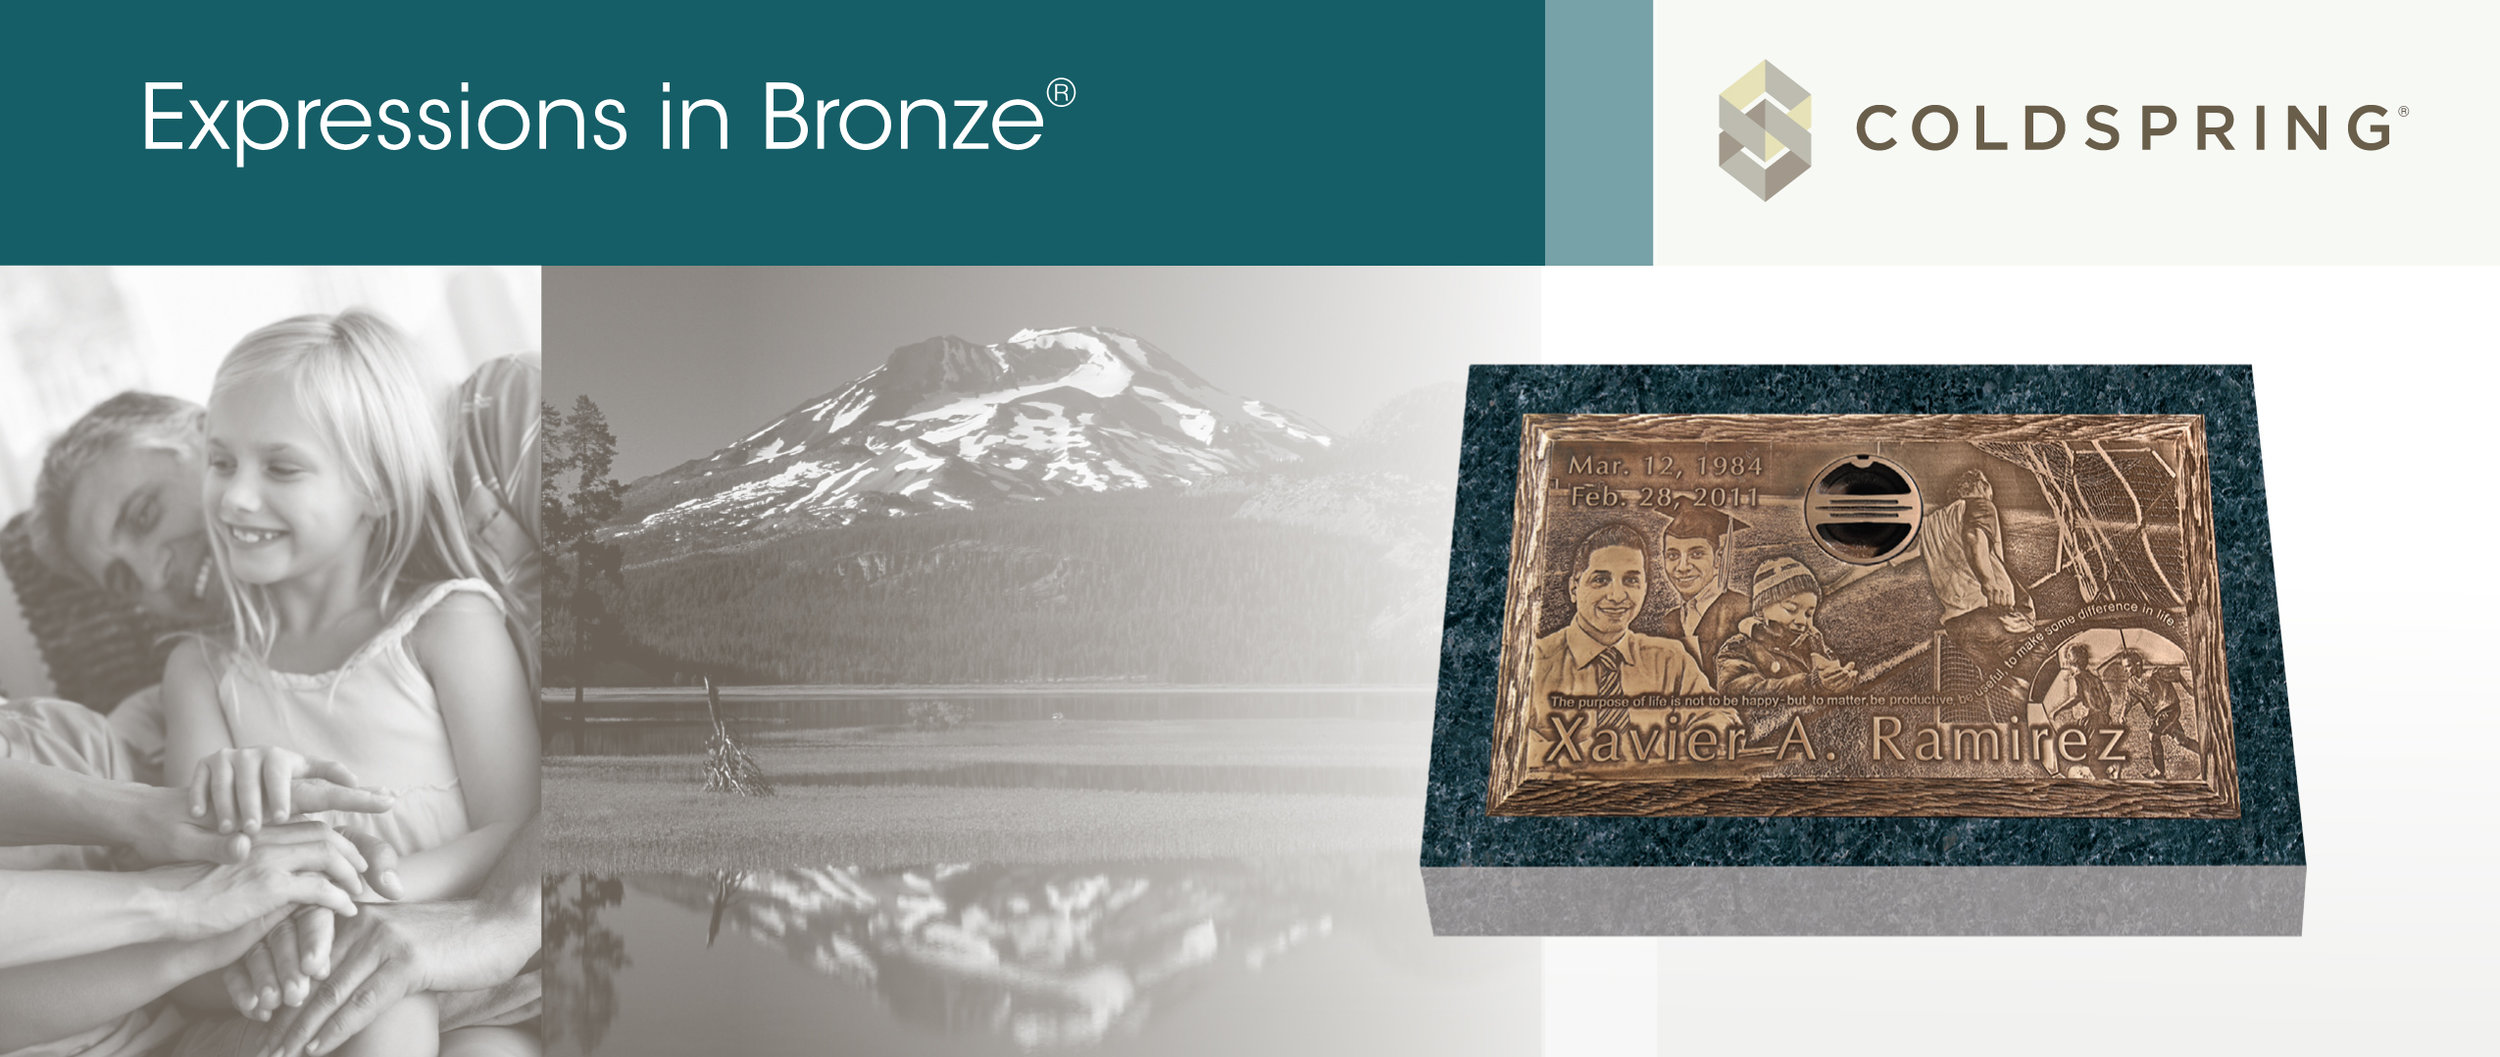 Coldspring Expressions in Bronze